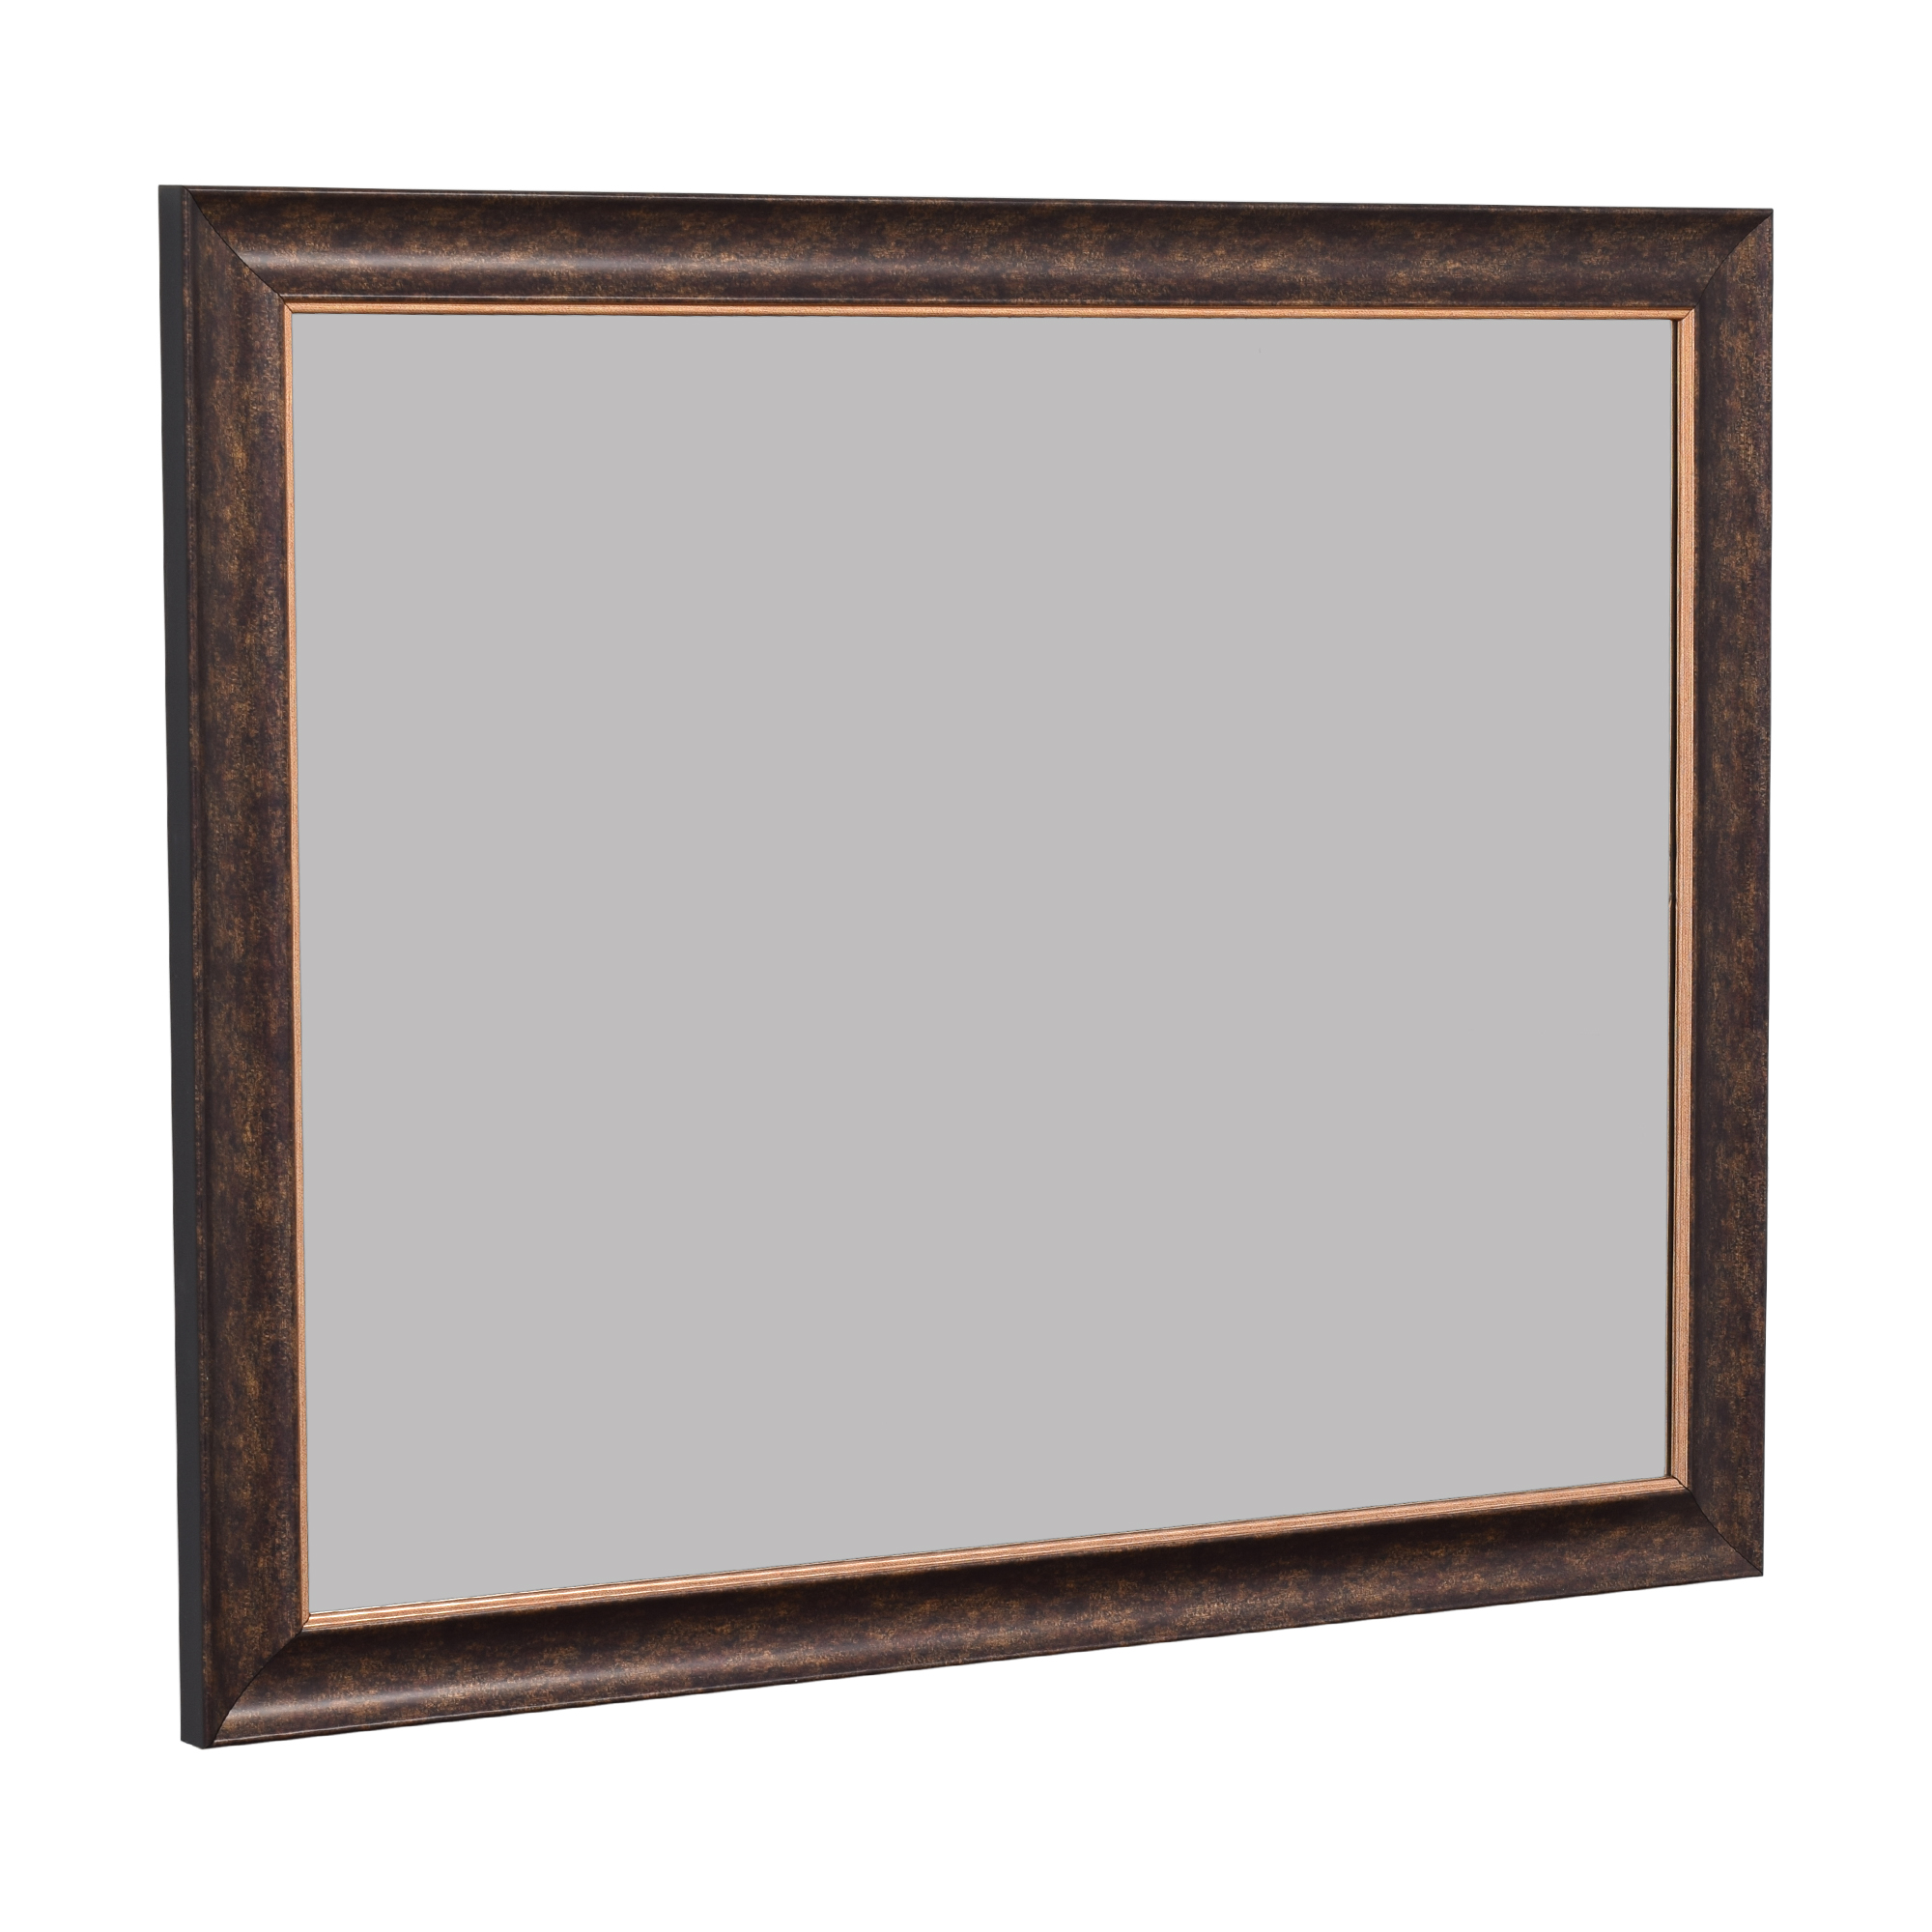 shop Bombay Company Rustic Beveled Mirror Bombay Company Decor